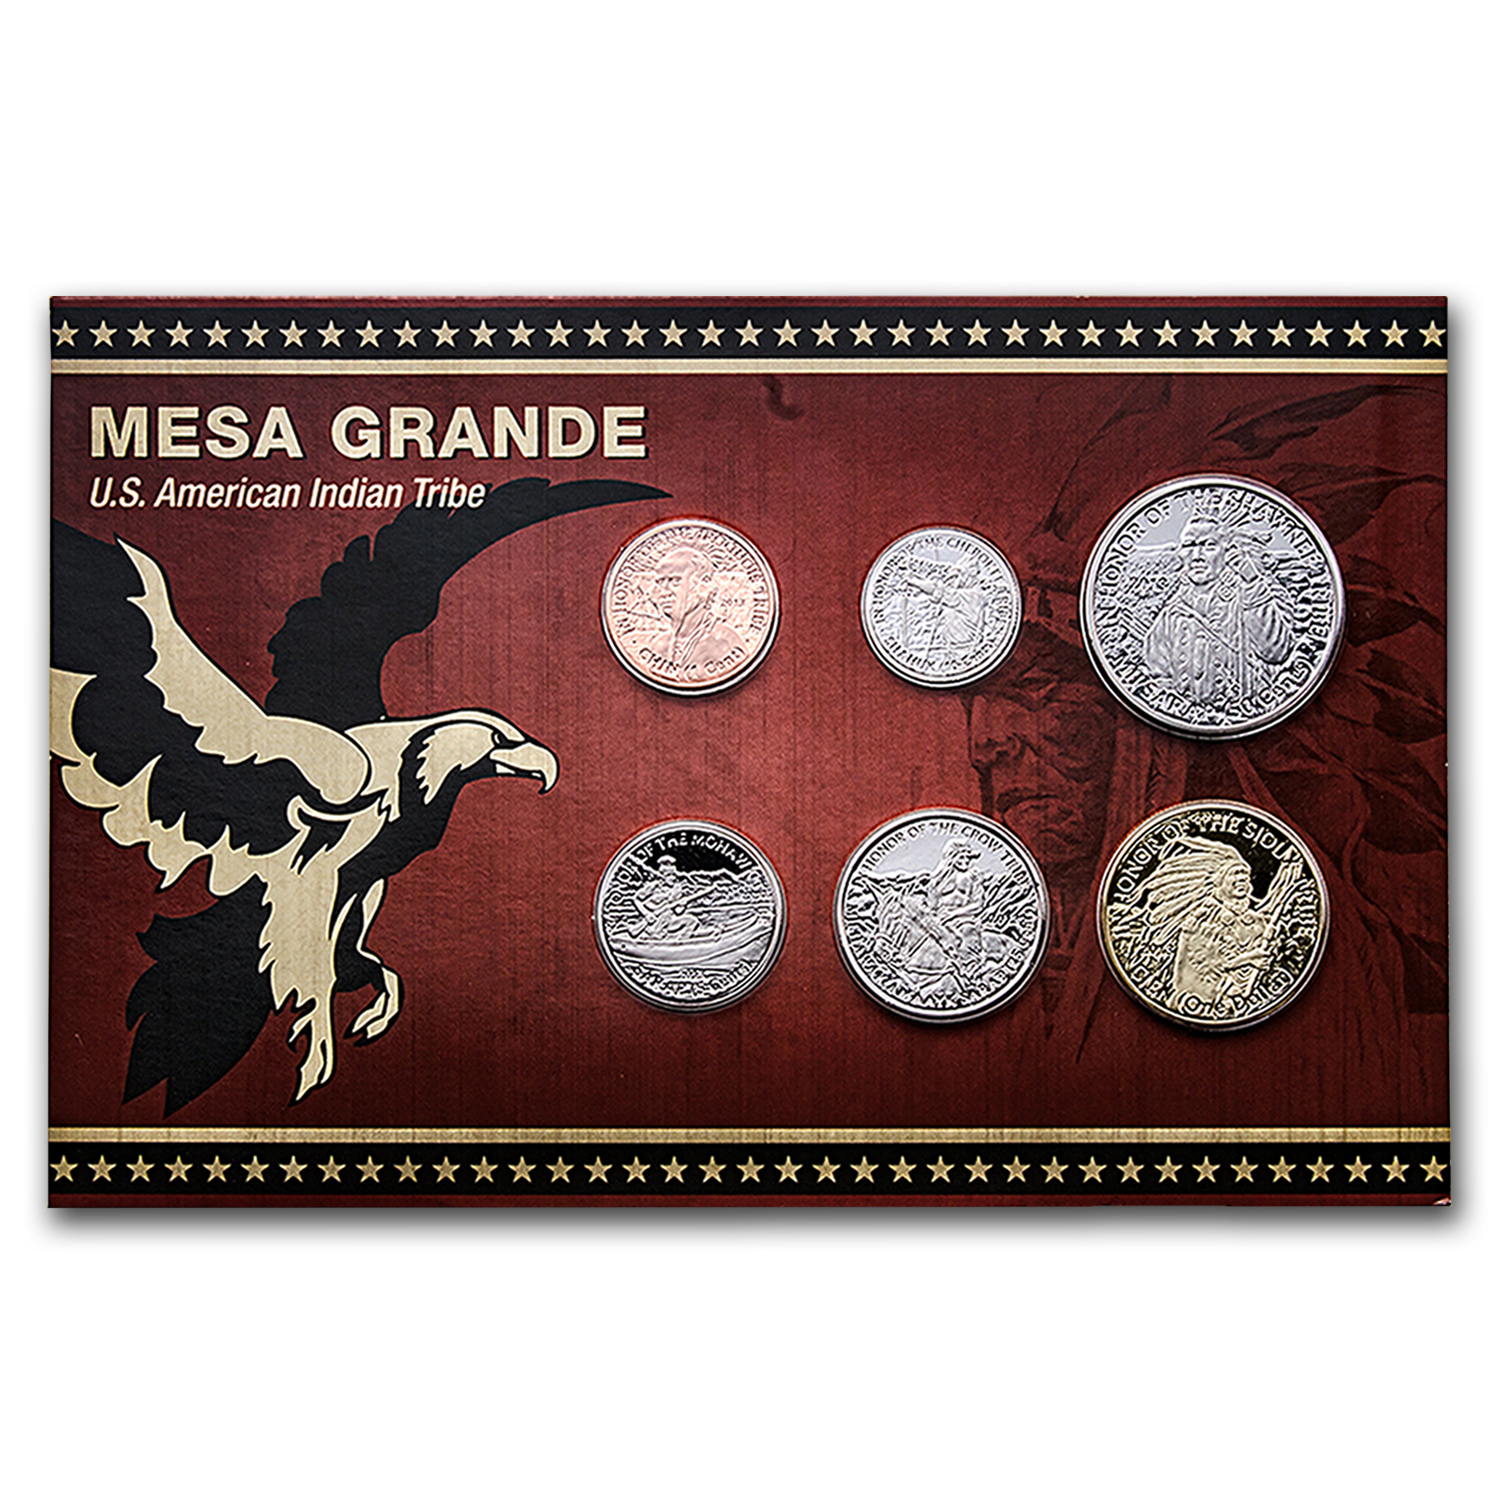 2013 Mesa Grande Tribe Coin Set